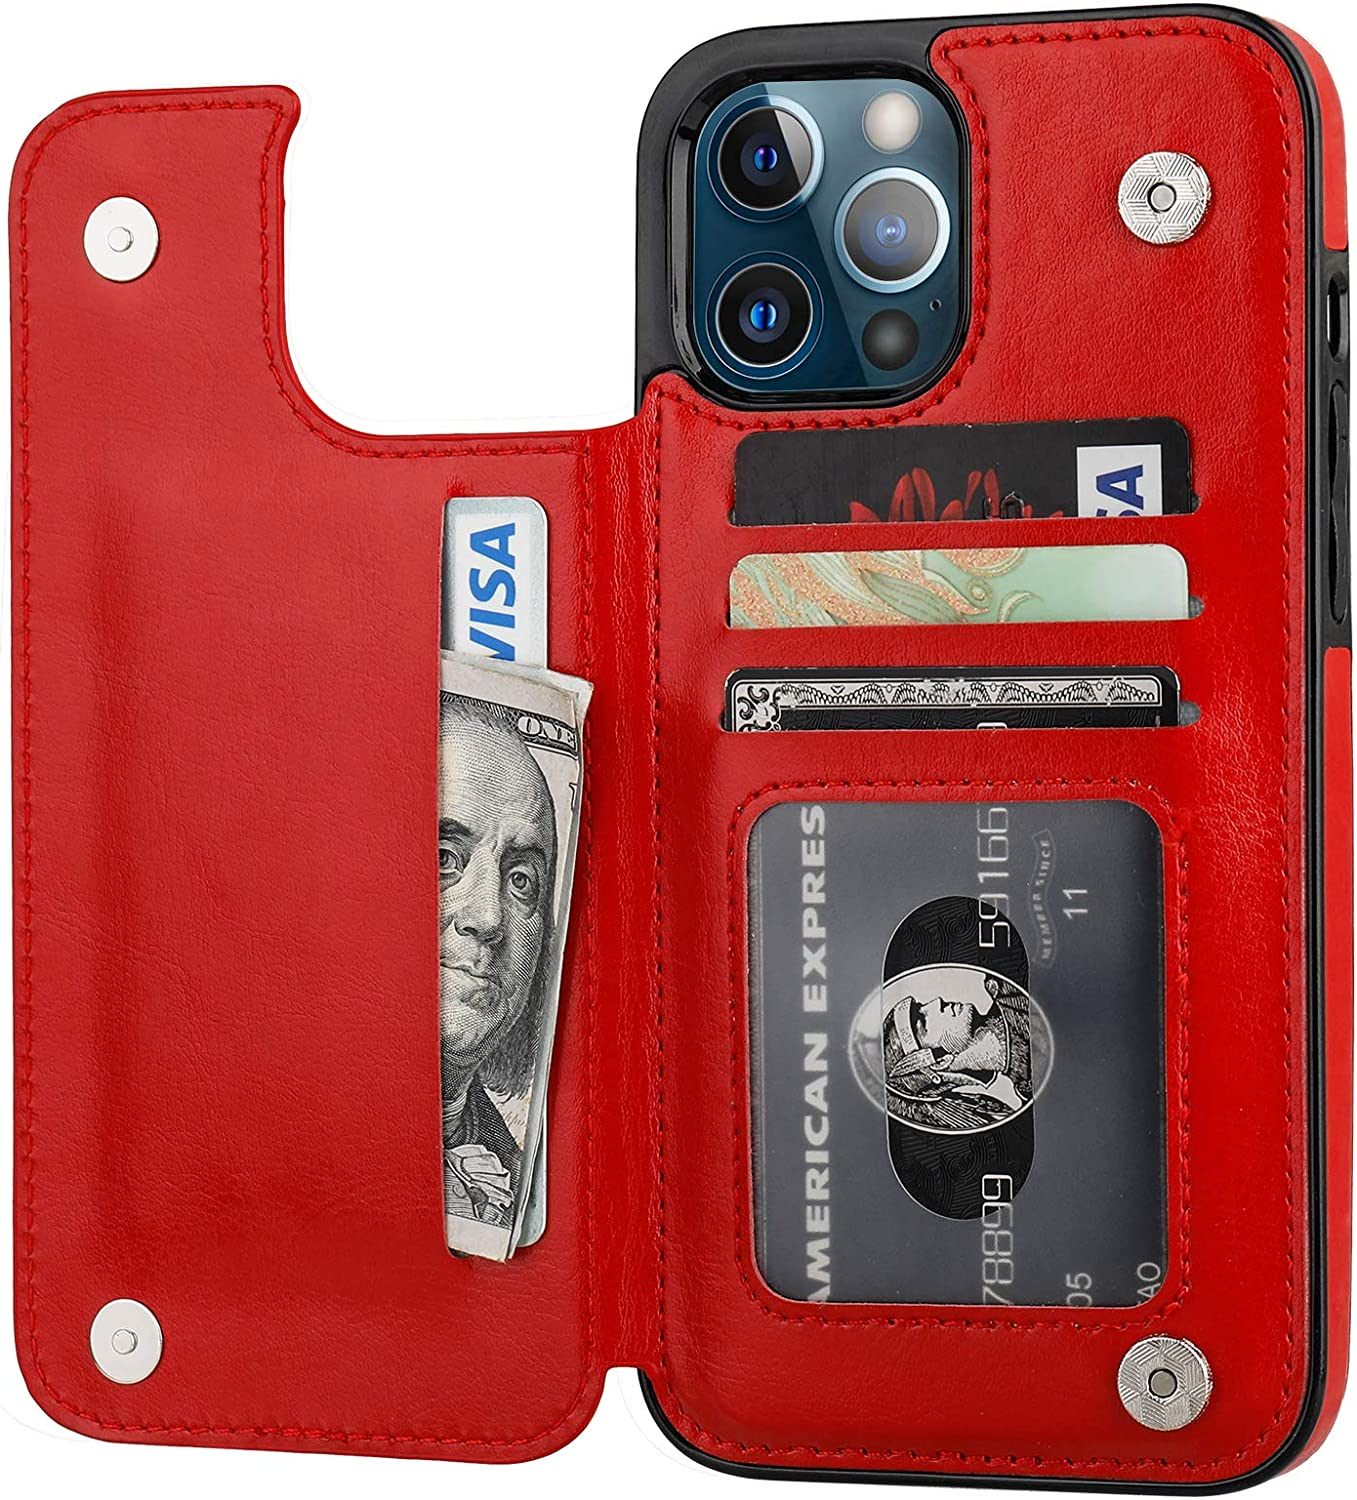 ONETOP Compatible with iPhone 12 Pro Max Wallet Case with Card Holder,PU Leather Kickstand Card Slots Case, Double Magnetic Clasp and Durable Shockproof Cover 6.7 Inch(Red)